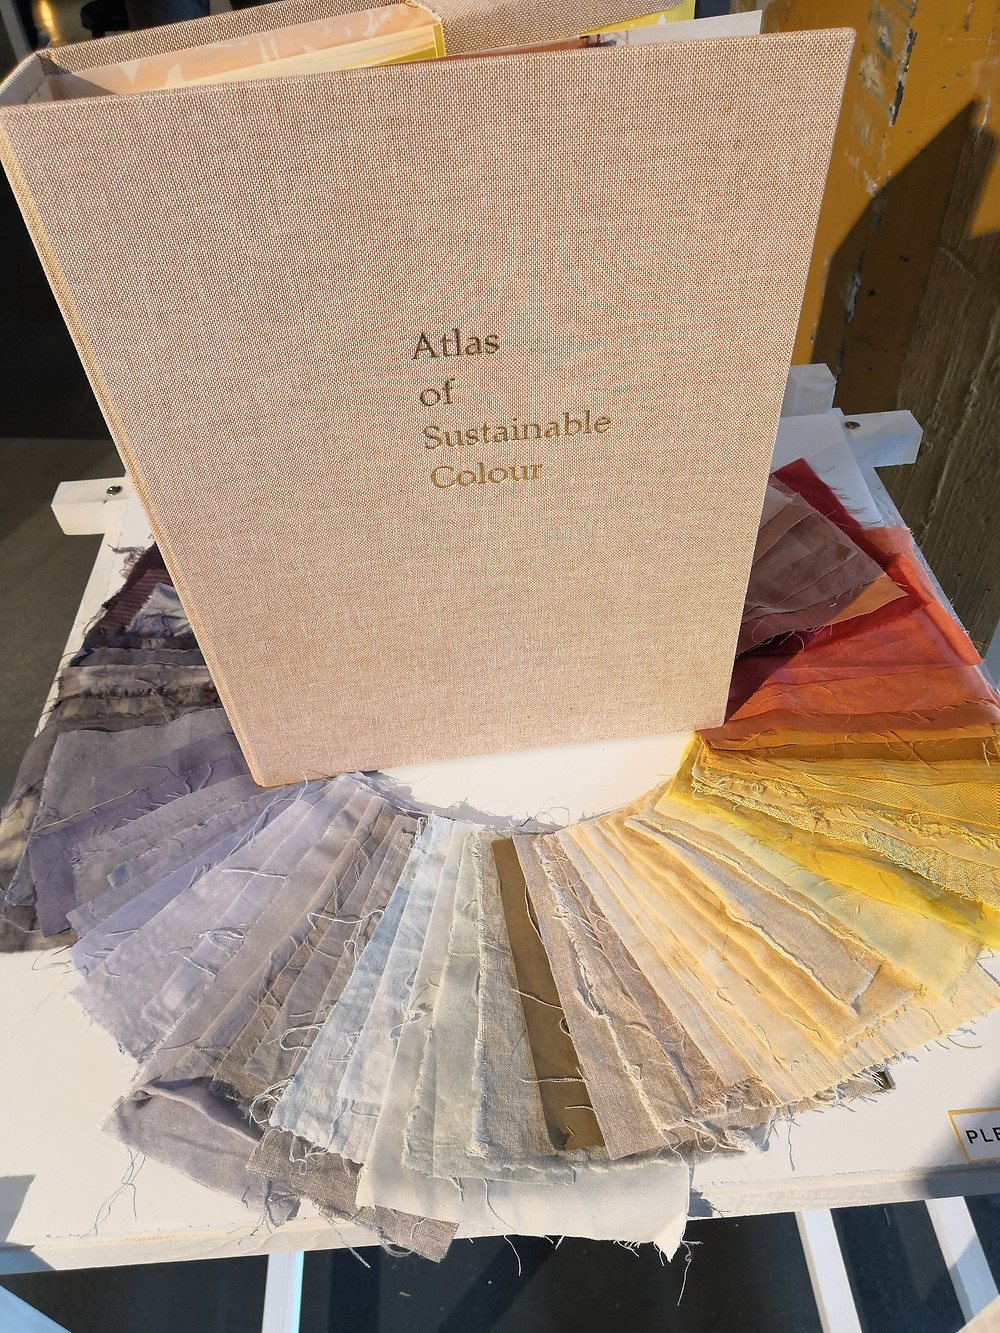 """A large book with the text """"Atlas of Sustainable Colour"""" on the cover, with different coloured swaths of cloth spread into a circle around the book."""